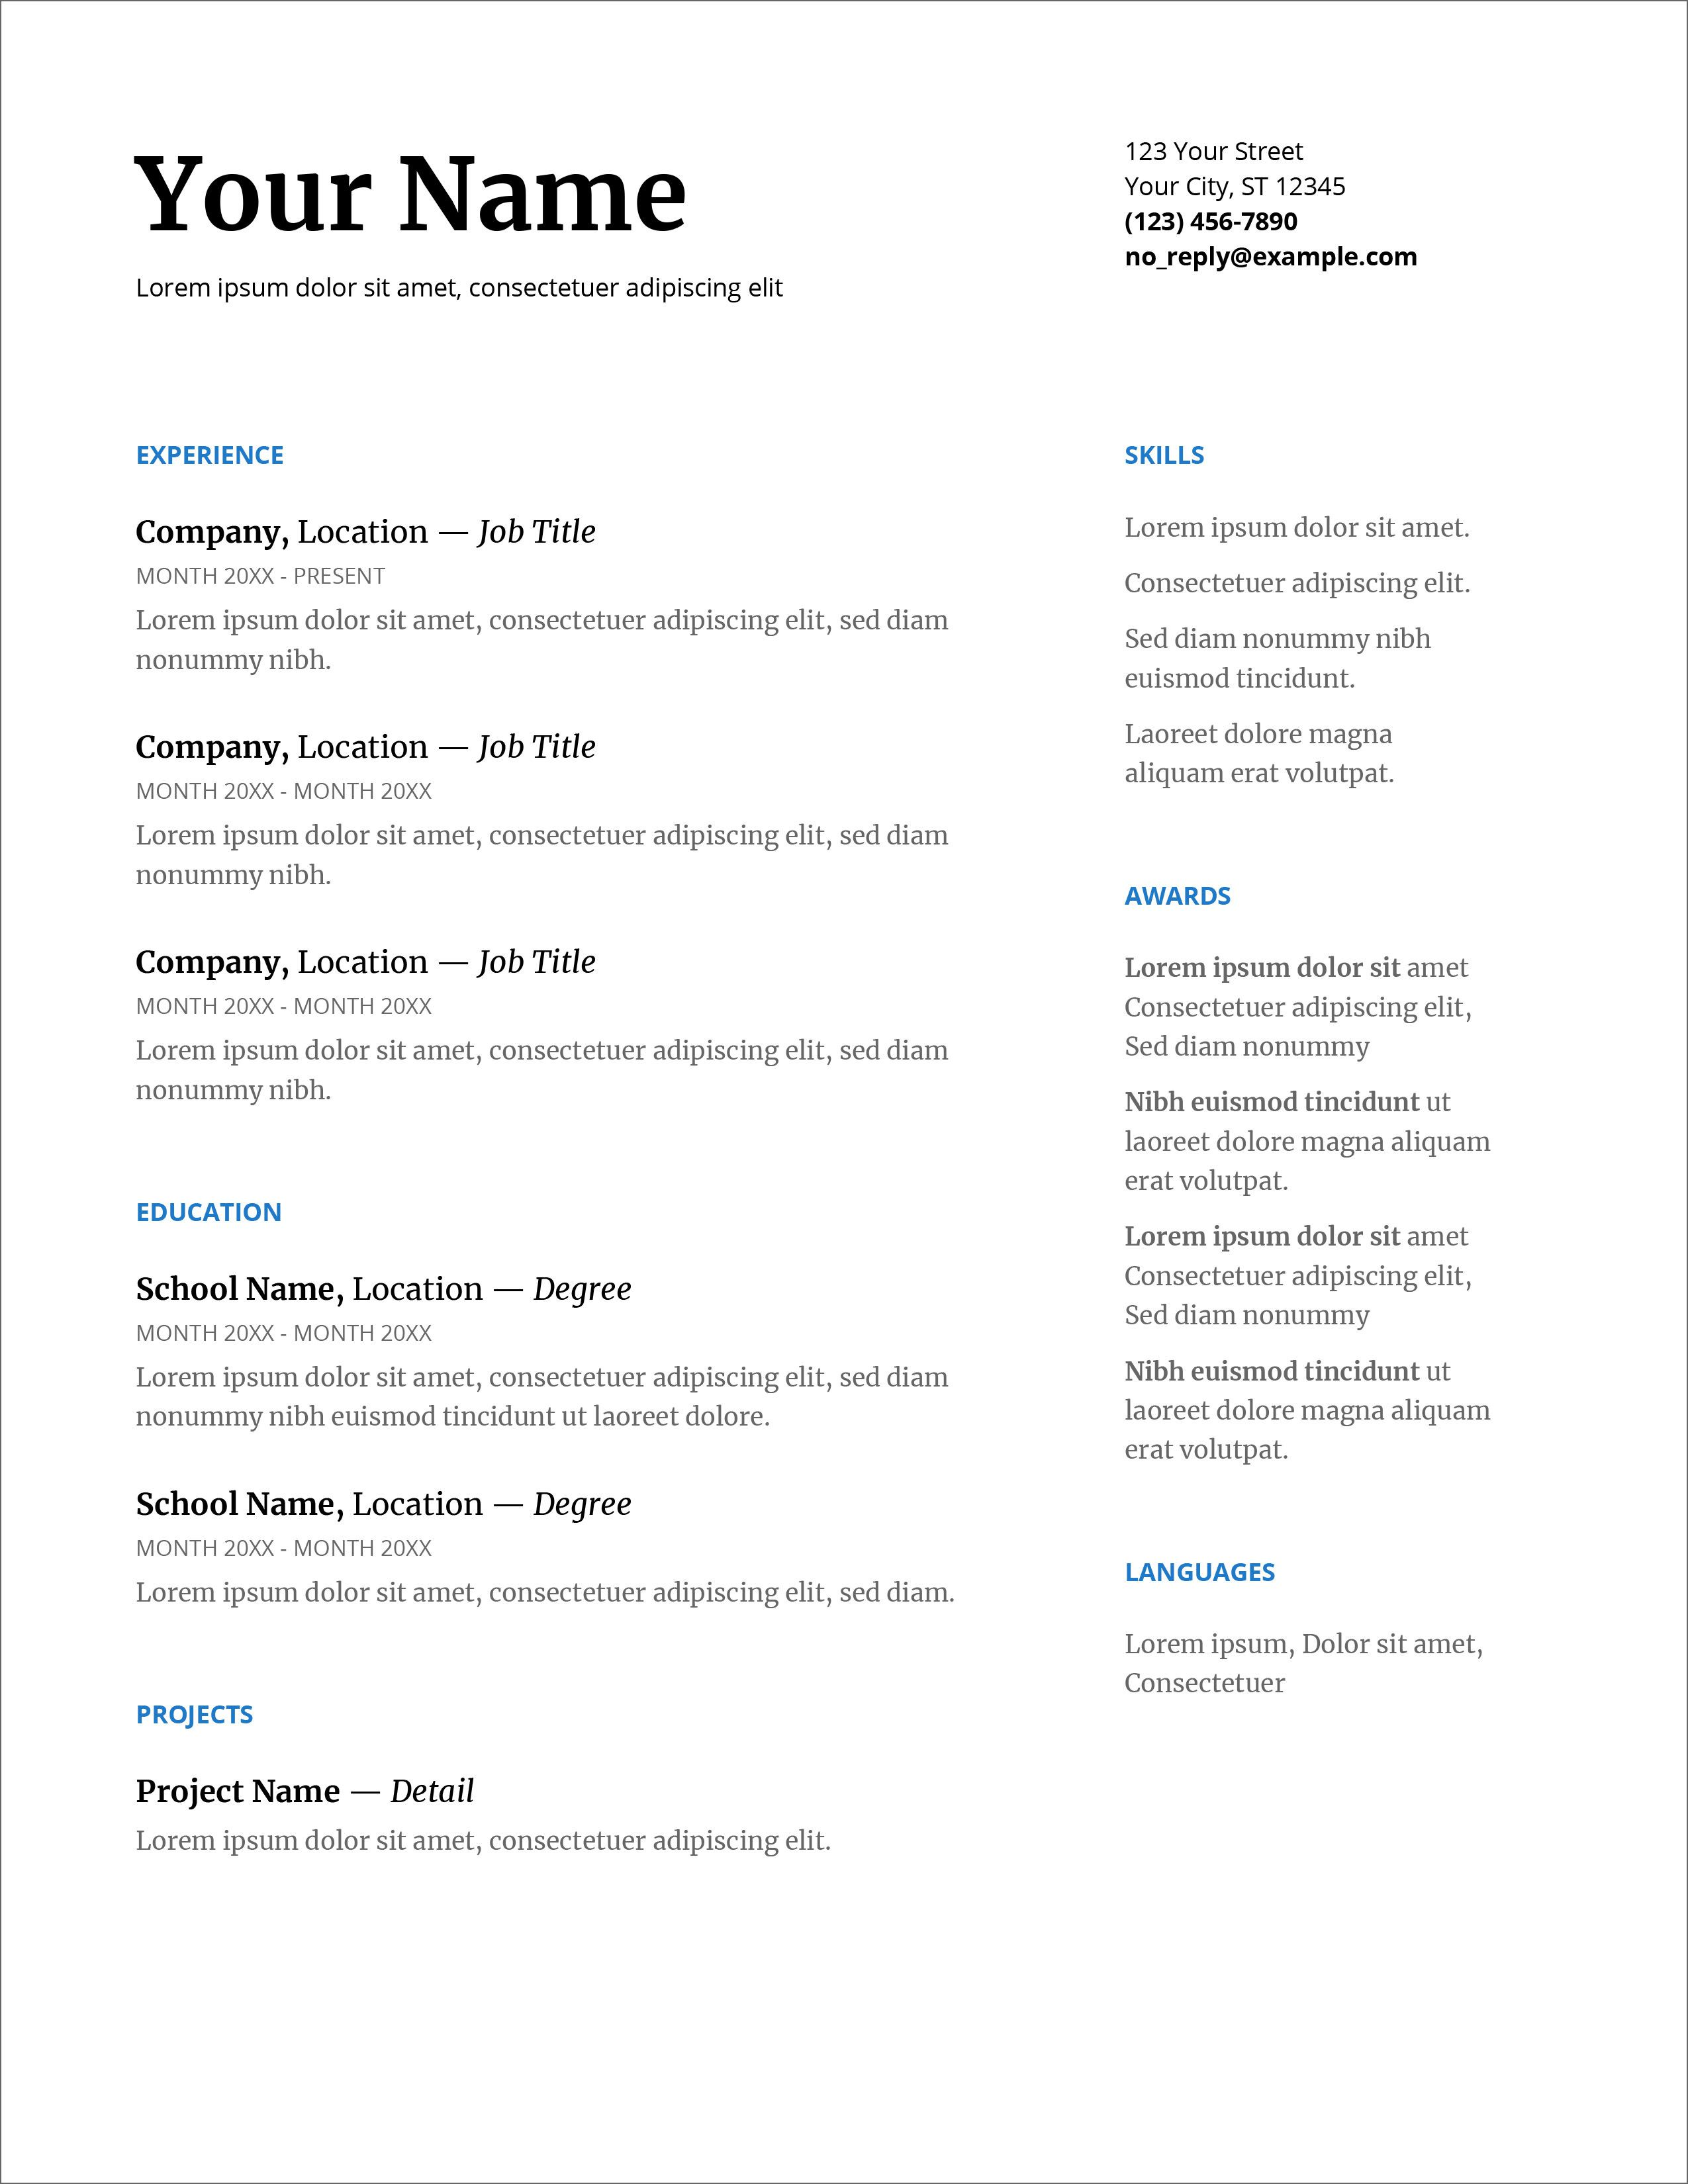 007 Fearsome Download Resume Template Word 2007 High Resolution